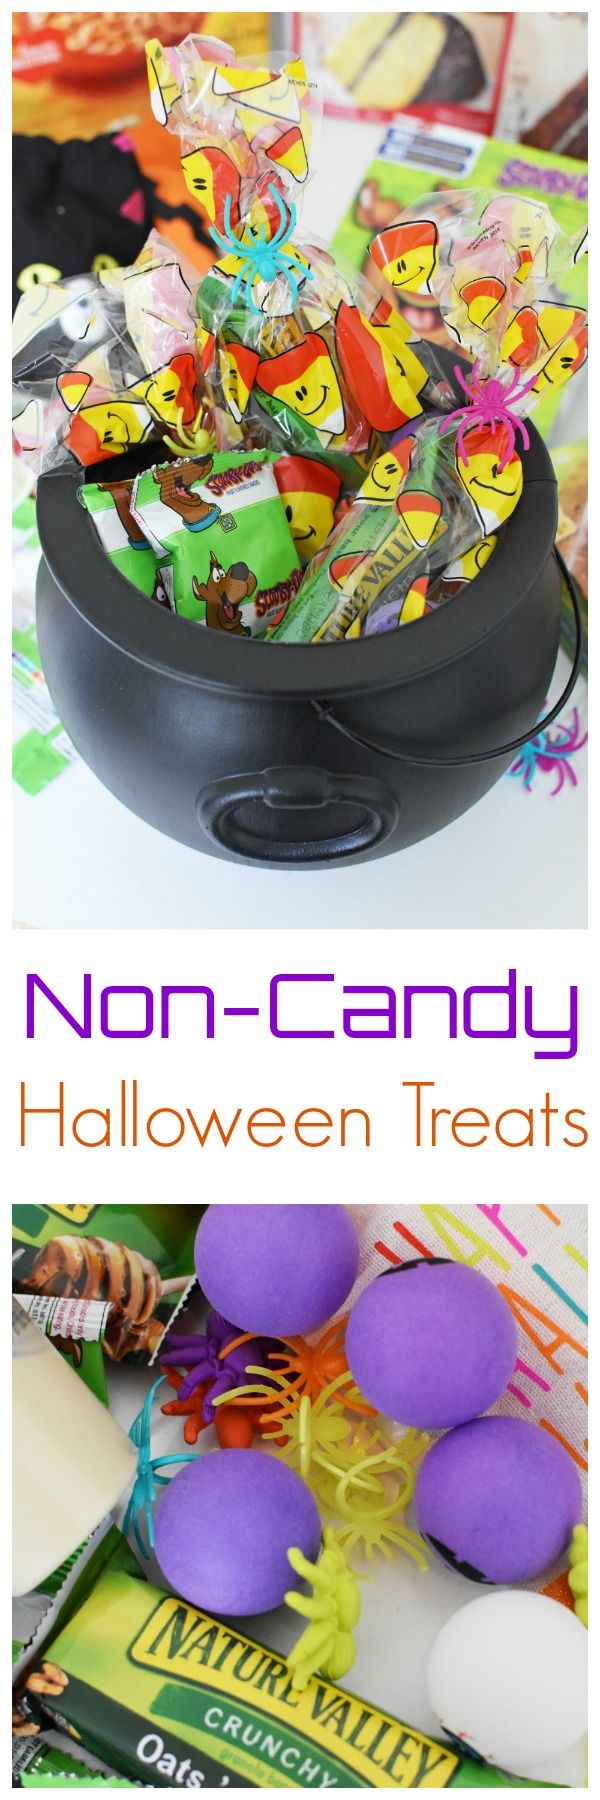 non-candy halloween ideas +a shaw's stock up sale! | halloween ideas